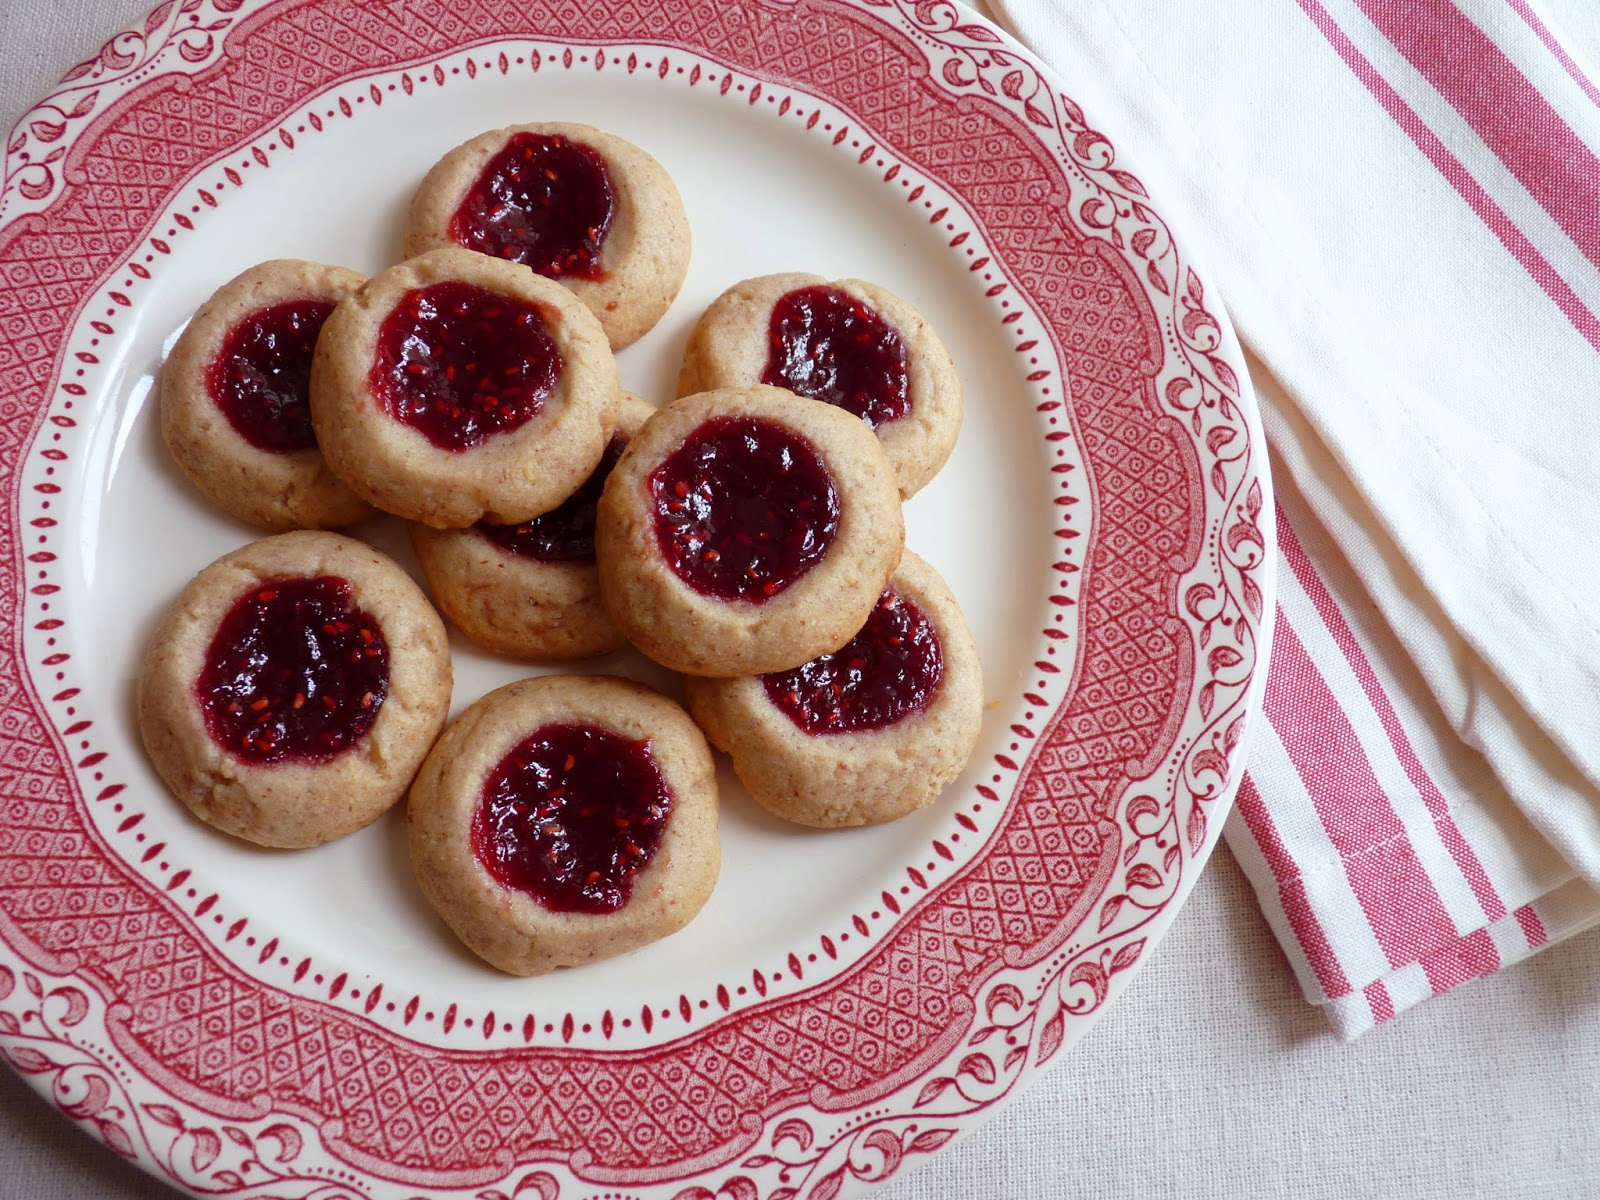 Thumbprint cookies with pecans recipe